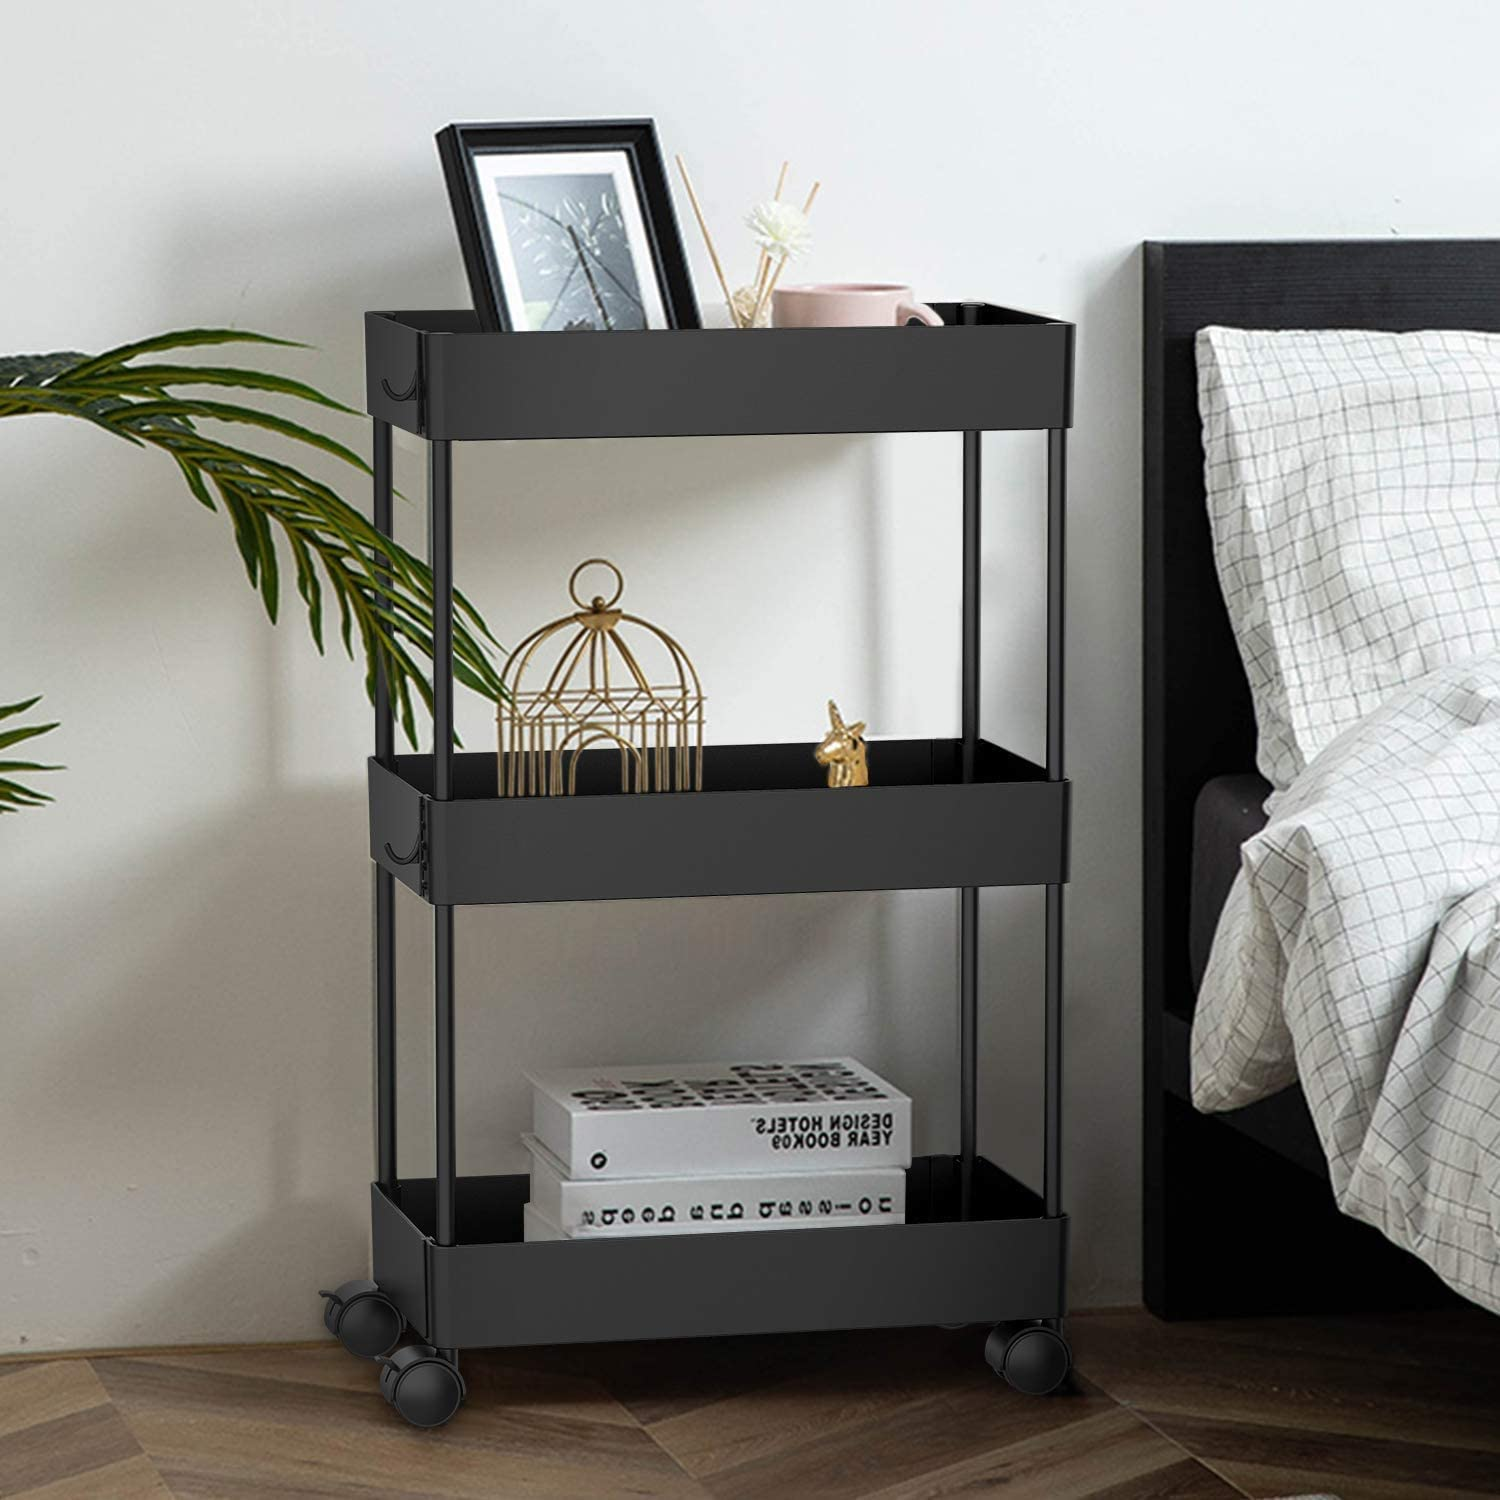 Rebertry Serving Trolleys OFFicial store Standing Shelf Organize Excellence Bathroom Units